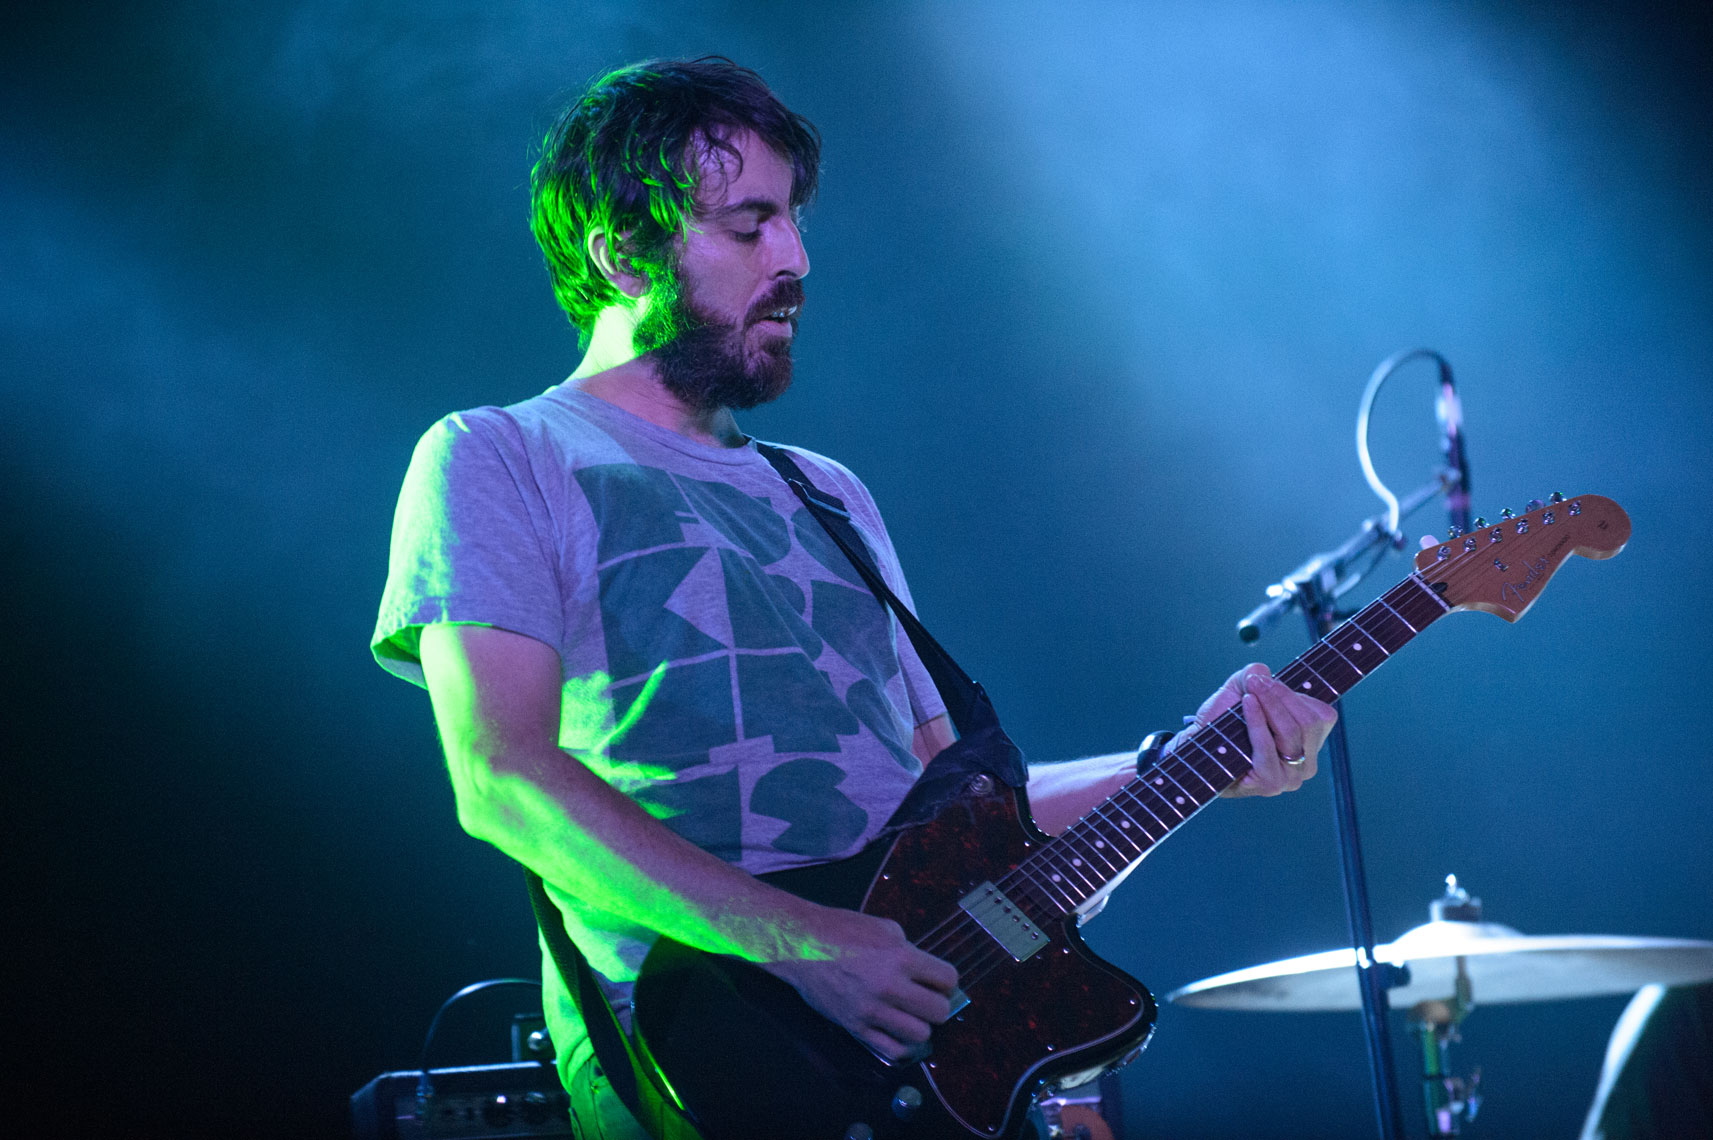 Explosions-in-the-Sky-plays-the-Thomas-Wolfe-Auditorium-at-Moogfest-on-Friday,-October-26,-2012-2